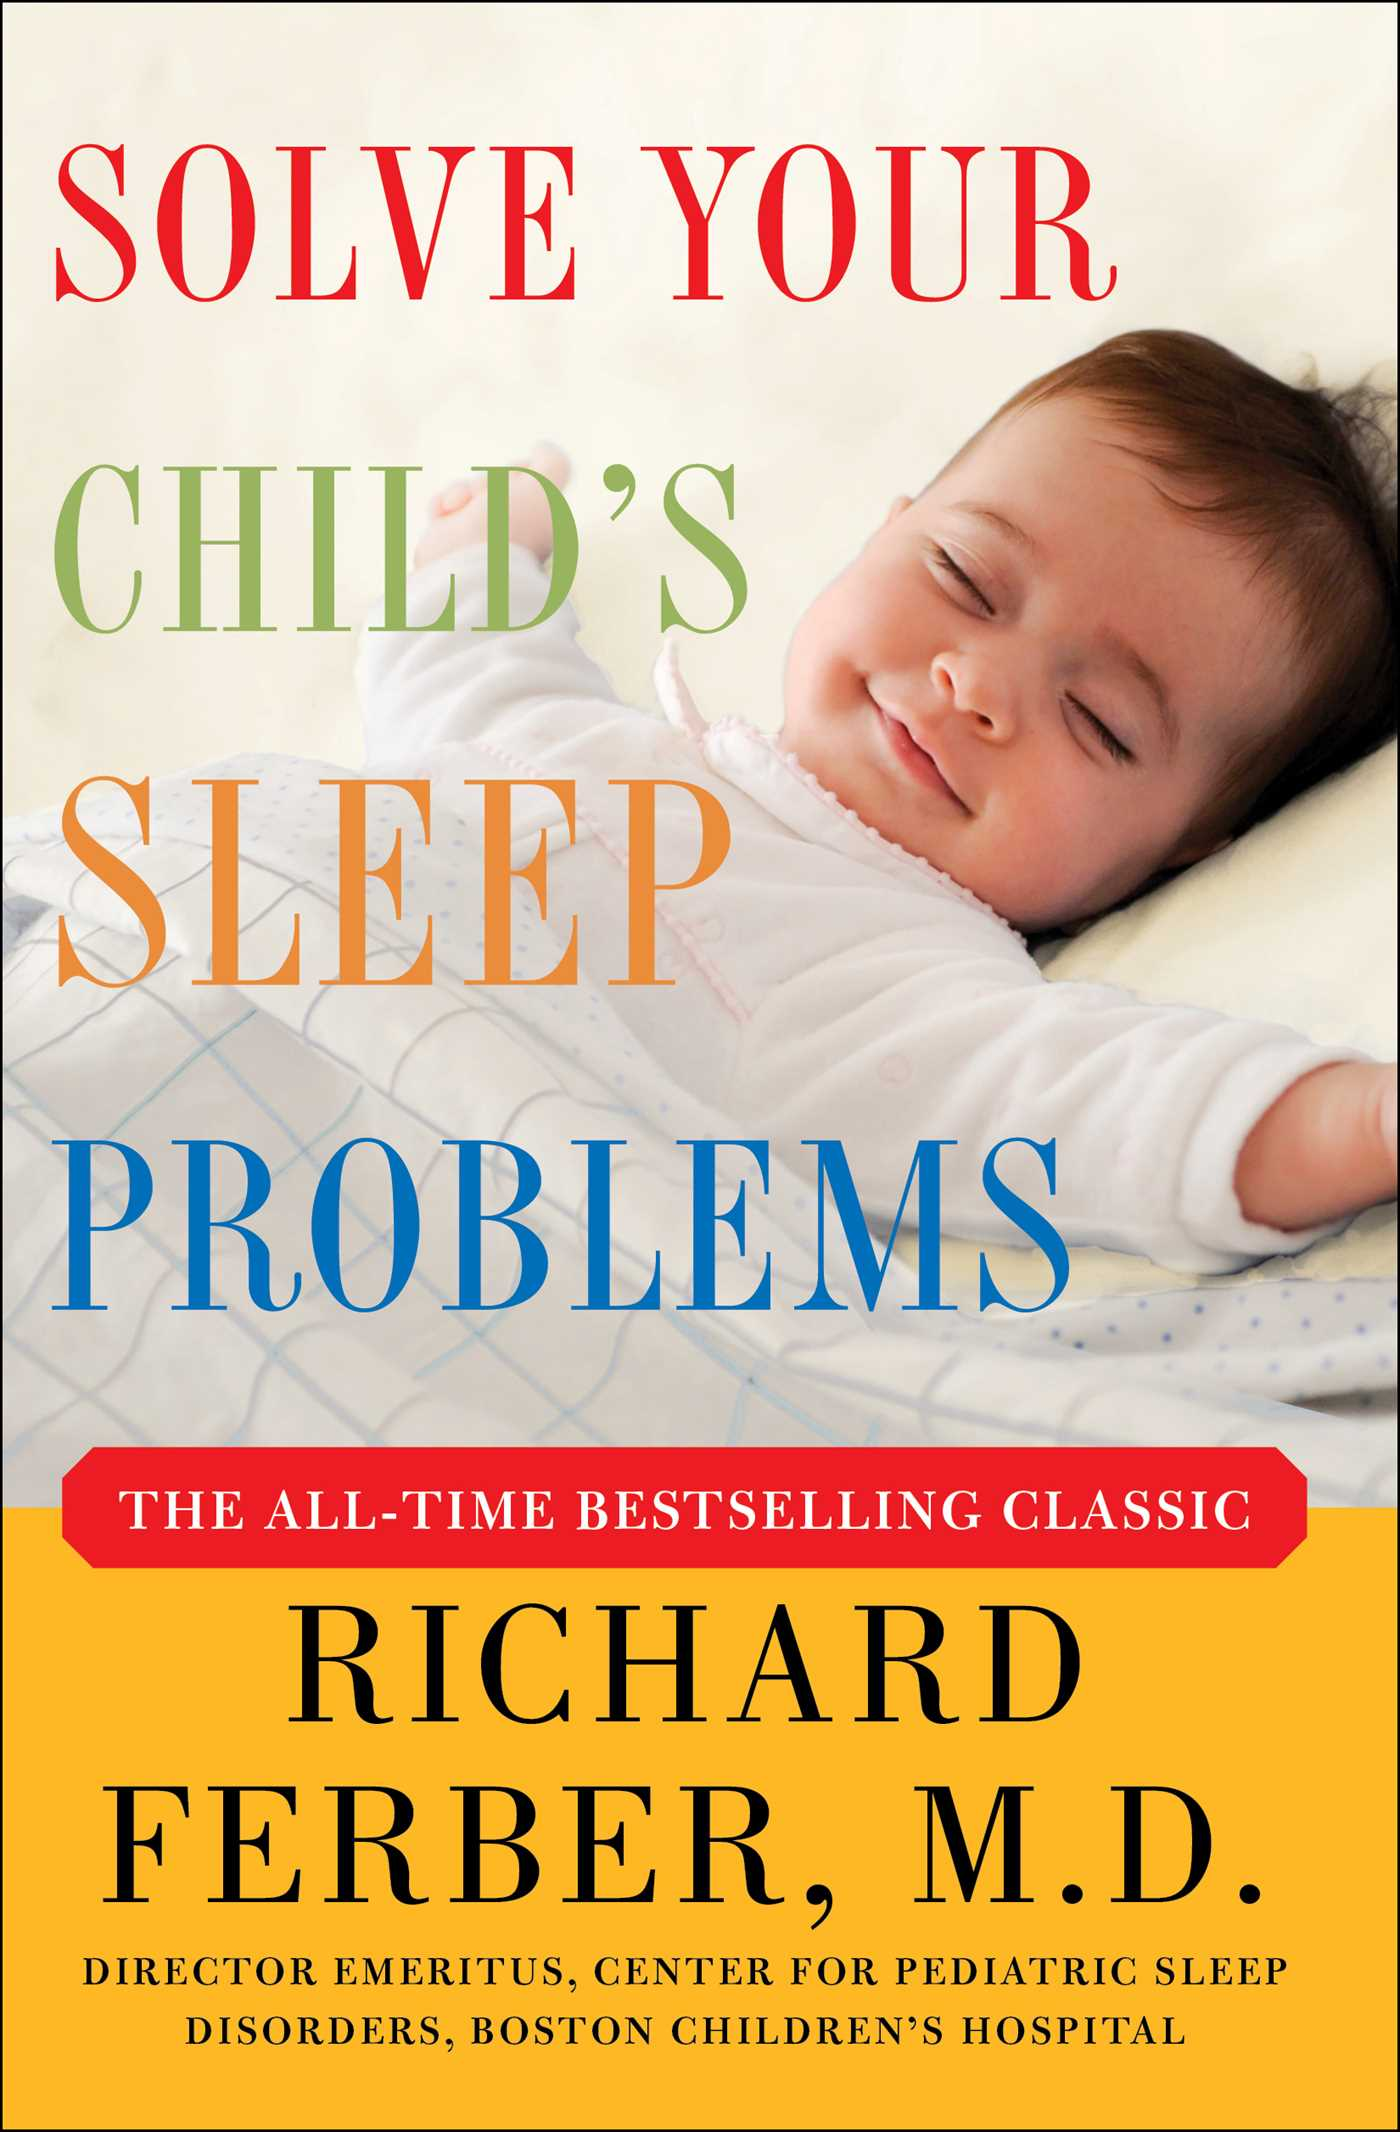 Solve-your-childs-sleep-problems-revised-edition-9780743217668_hr